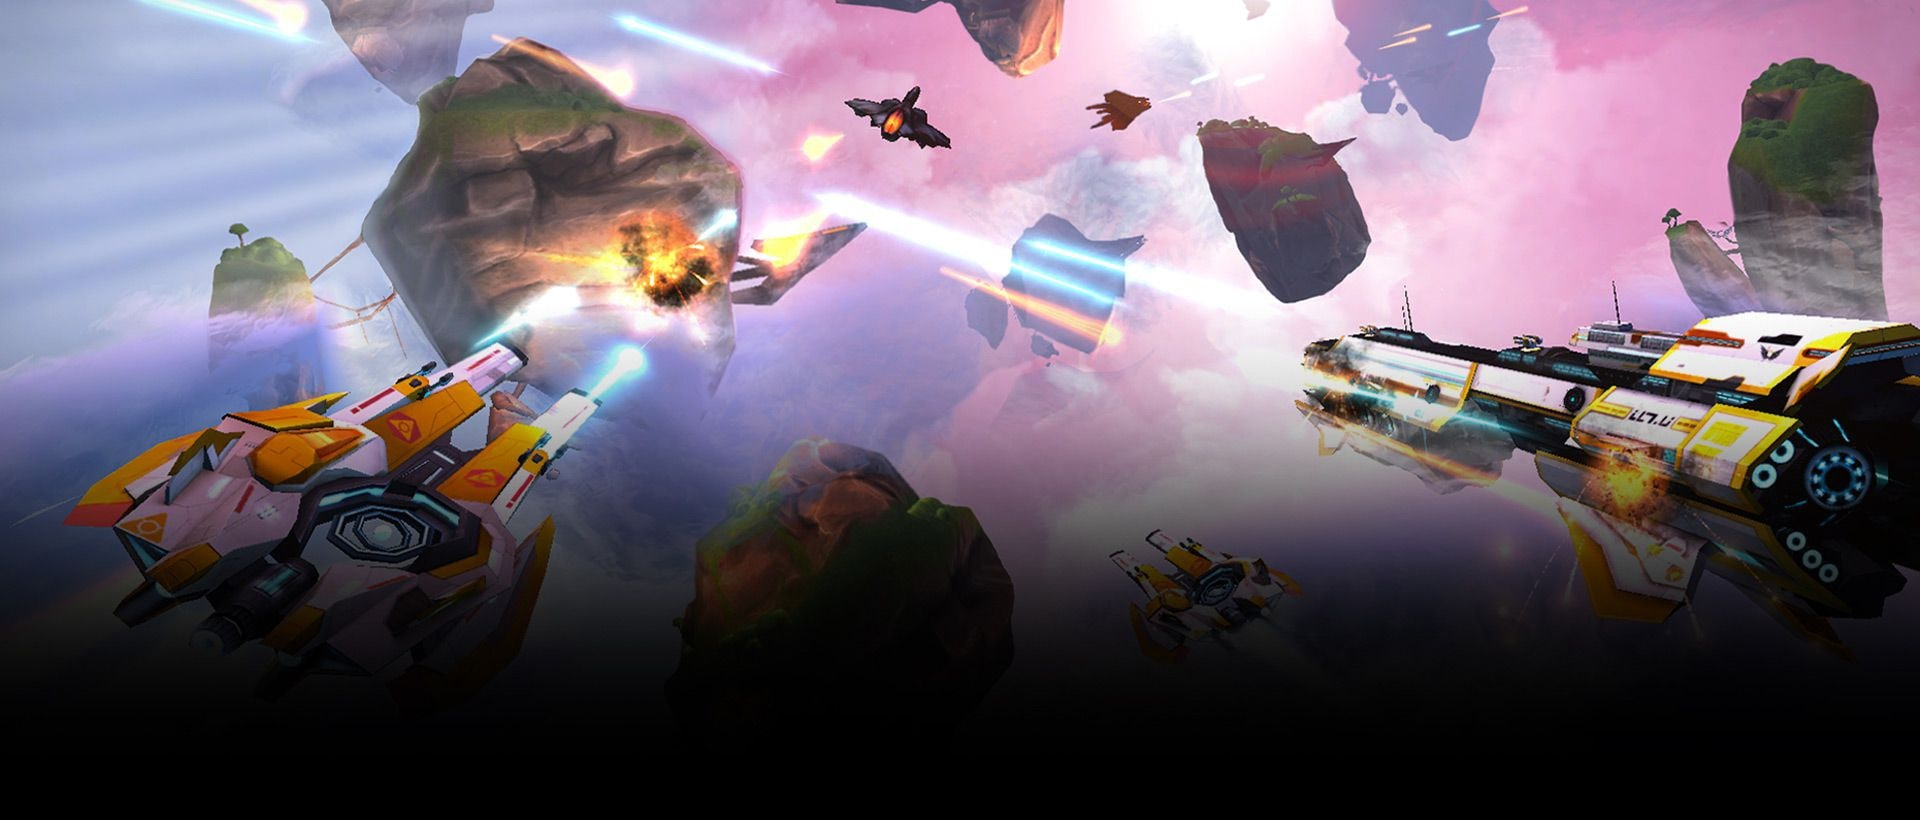 Example image 2 of Gear VR game Anshar Wars 2